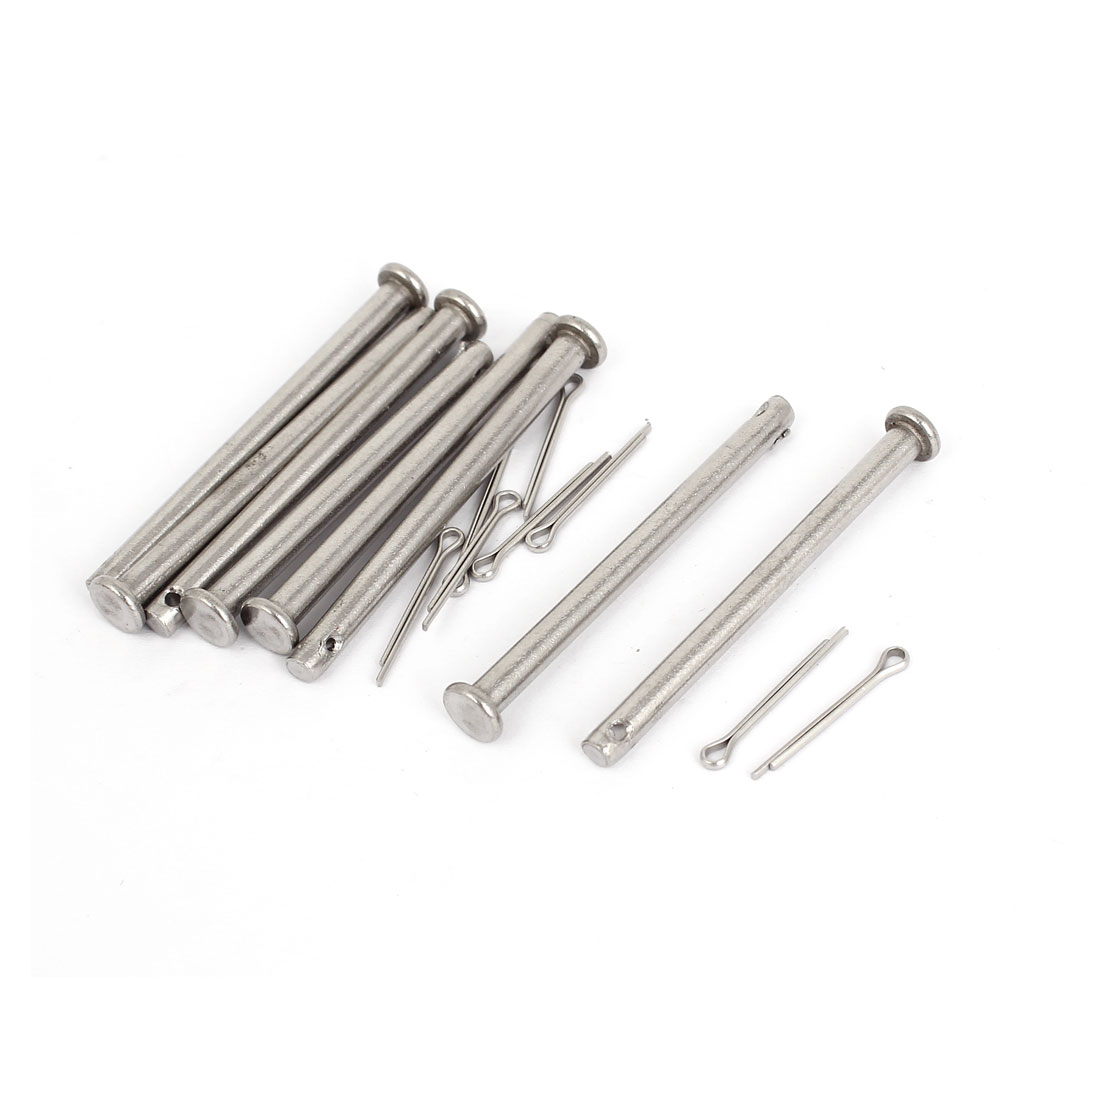 M4x50mm Flat Head 304 Stainless Steel Round Clevis Pins Fastener 8pcs